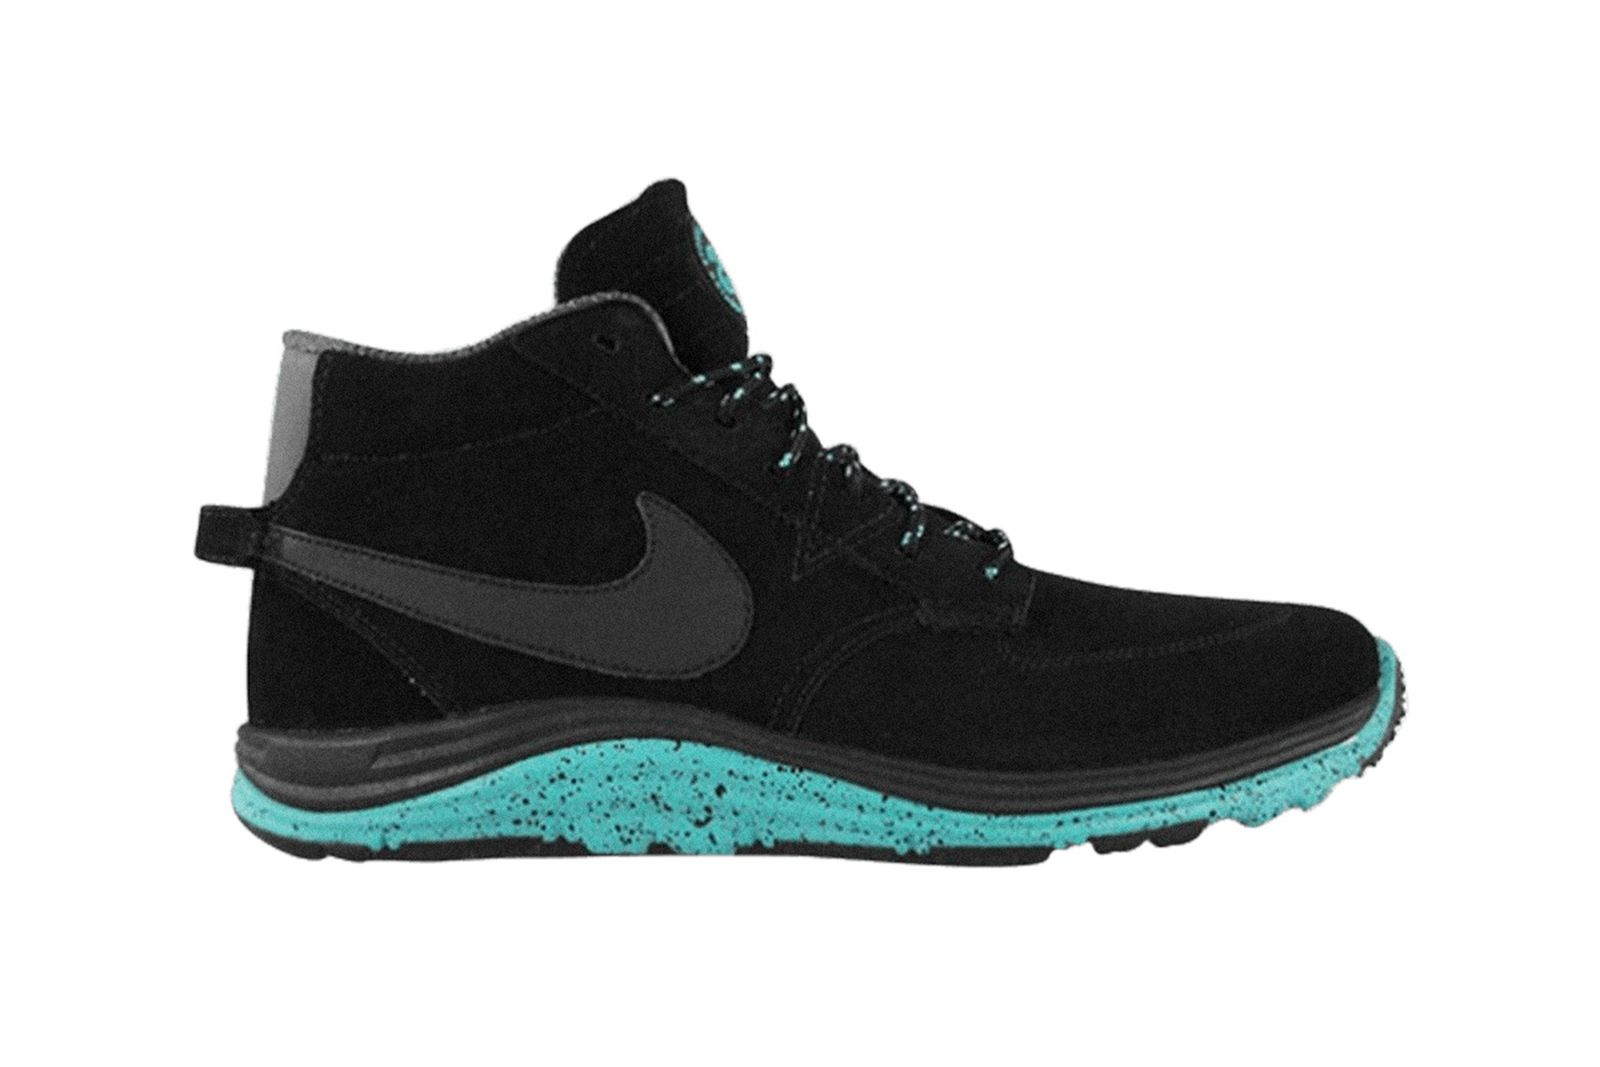 stussy-nike-sneaker-collaboration-roundup-new-000